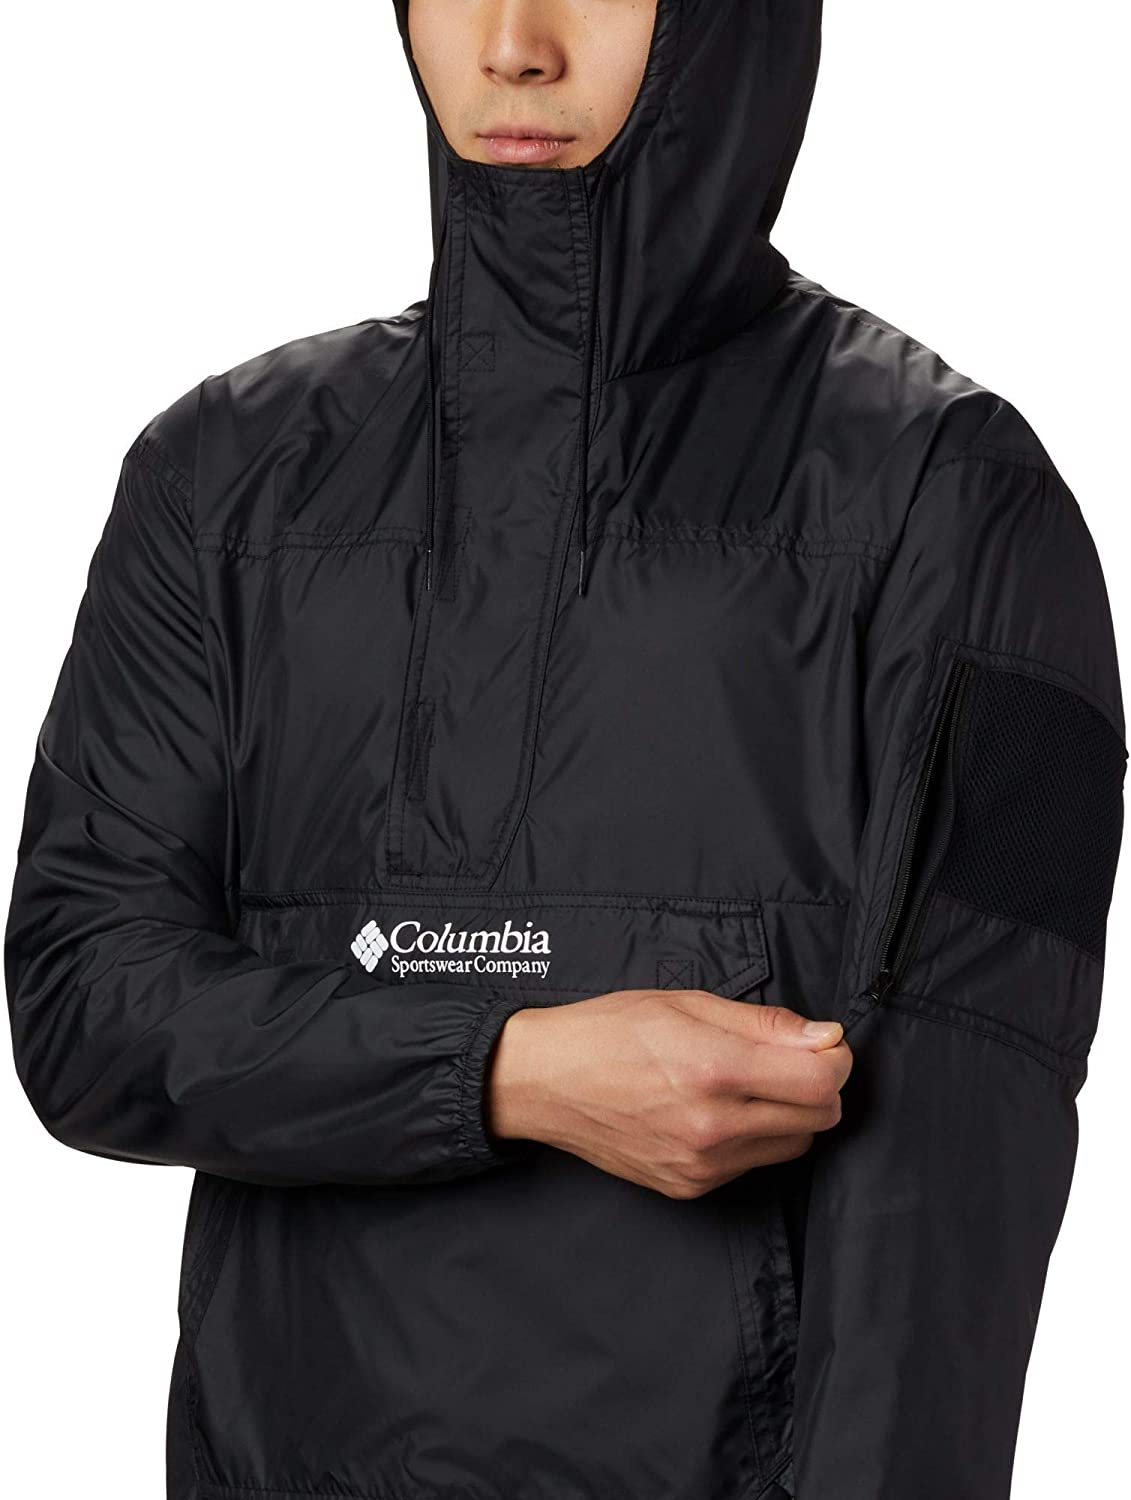 Poli/éster Cortavientos impermeable Hombre Columbia 1714291 CHALLENGER